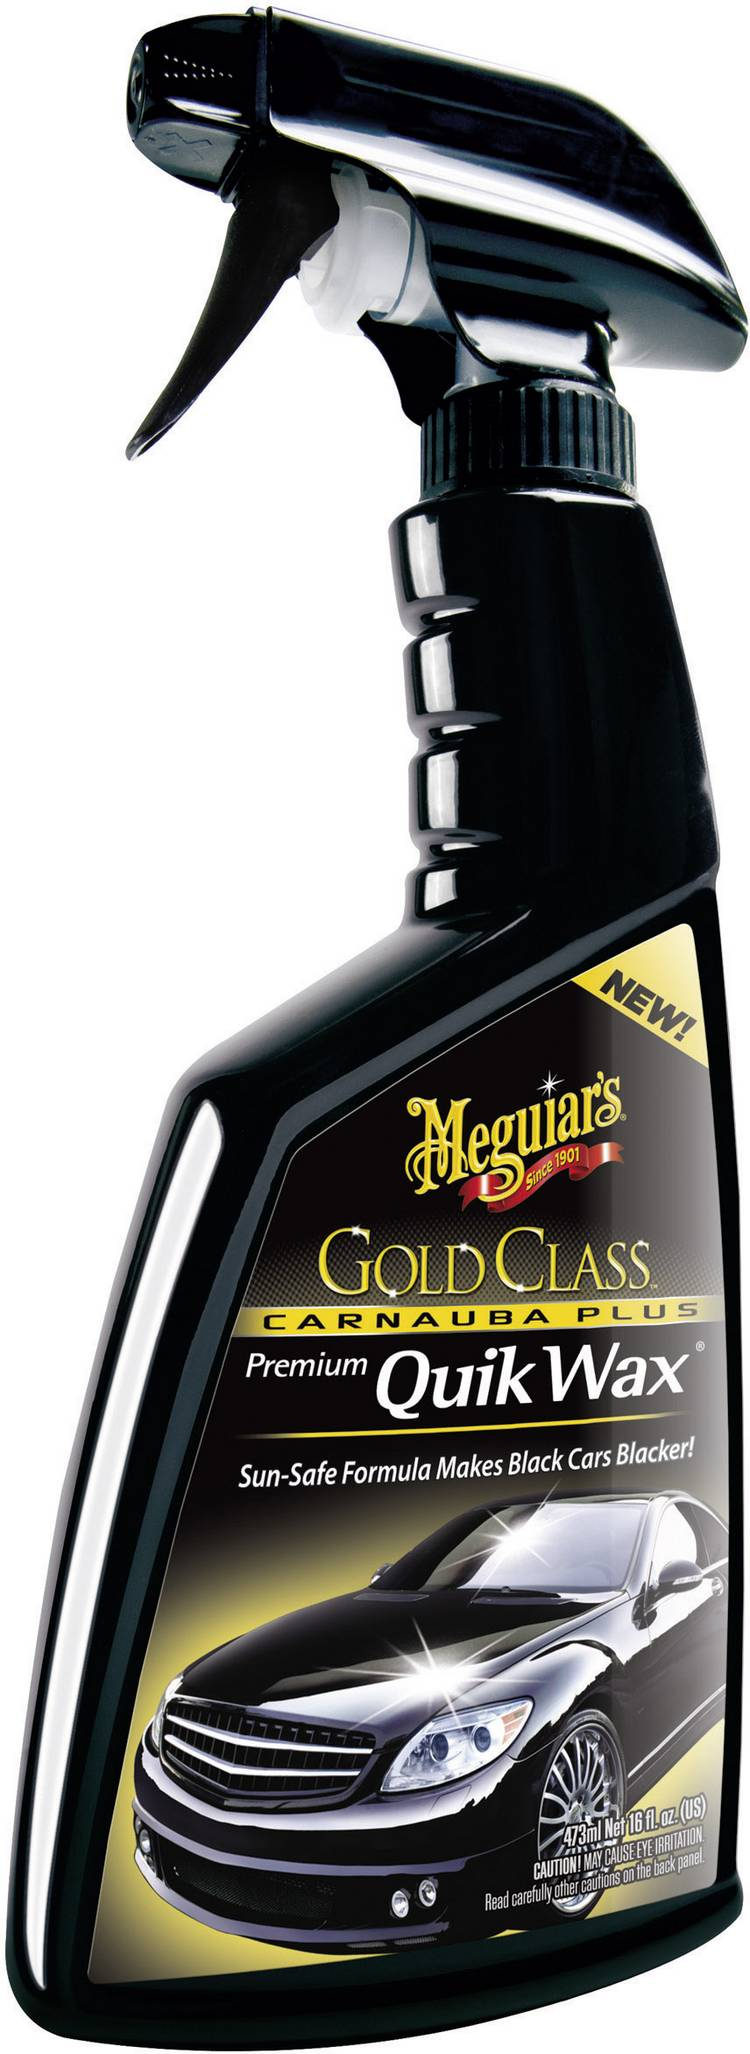 Image of Auto wax spray 473 ml Meguiars Gold Class Carnauba Plus Quik Wax G7716